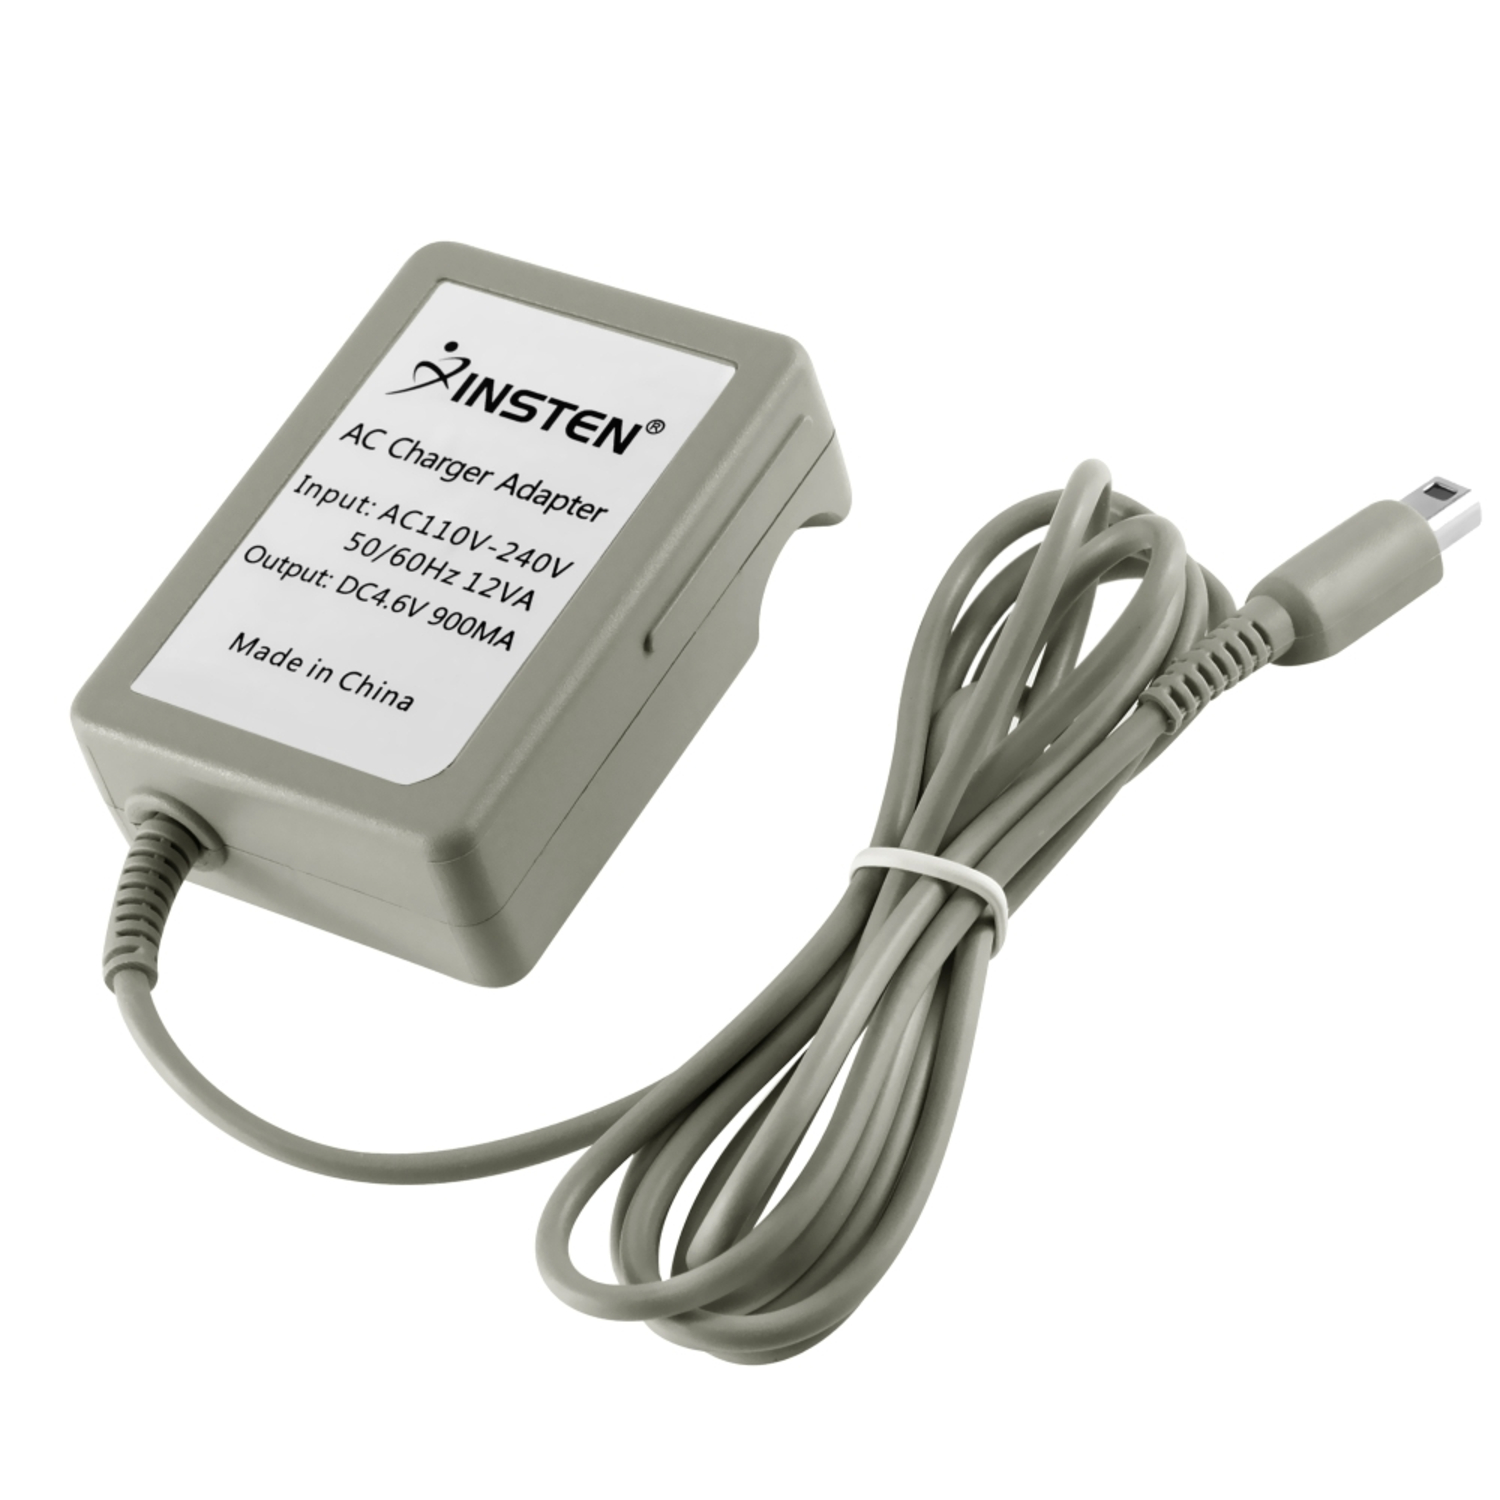 Insten 20 Pcs Wall Home Travel Charger AC Power Adapter For Nintendo DSI NDSI